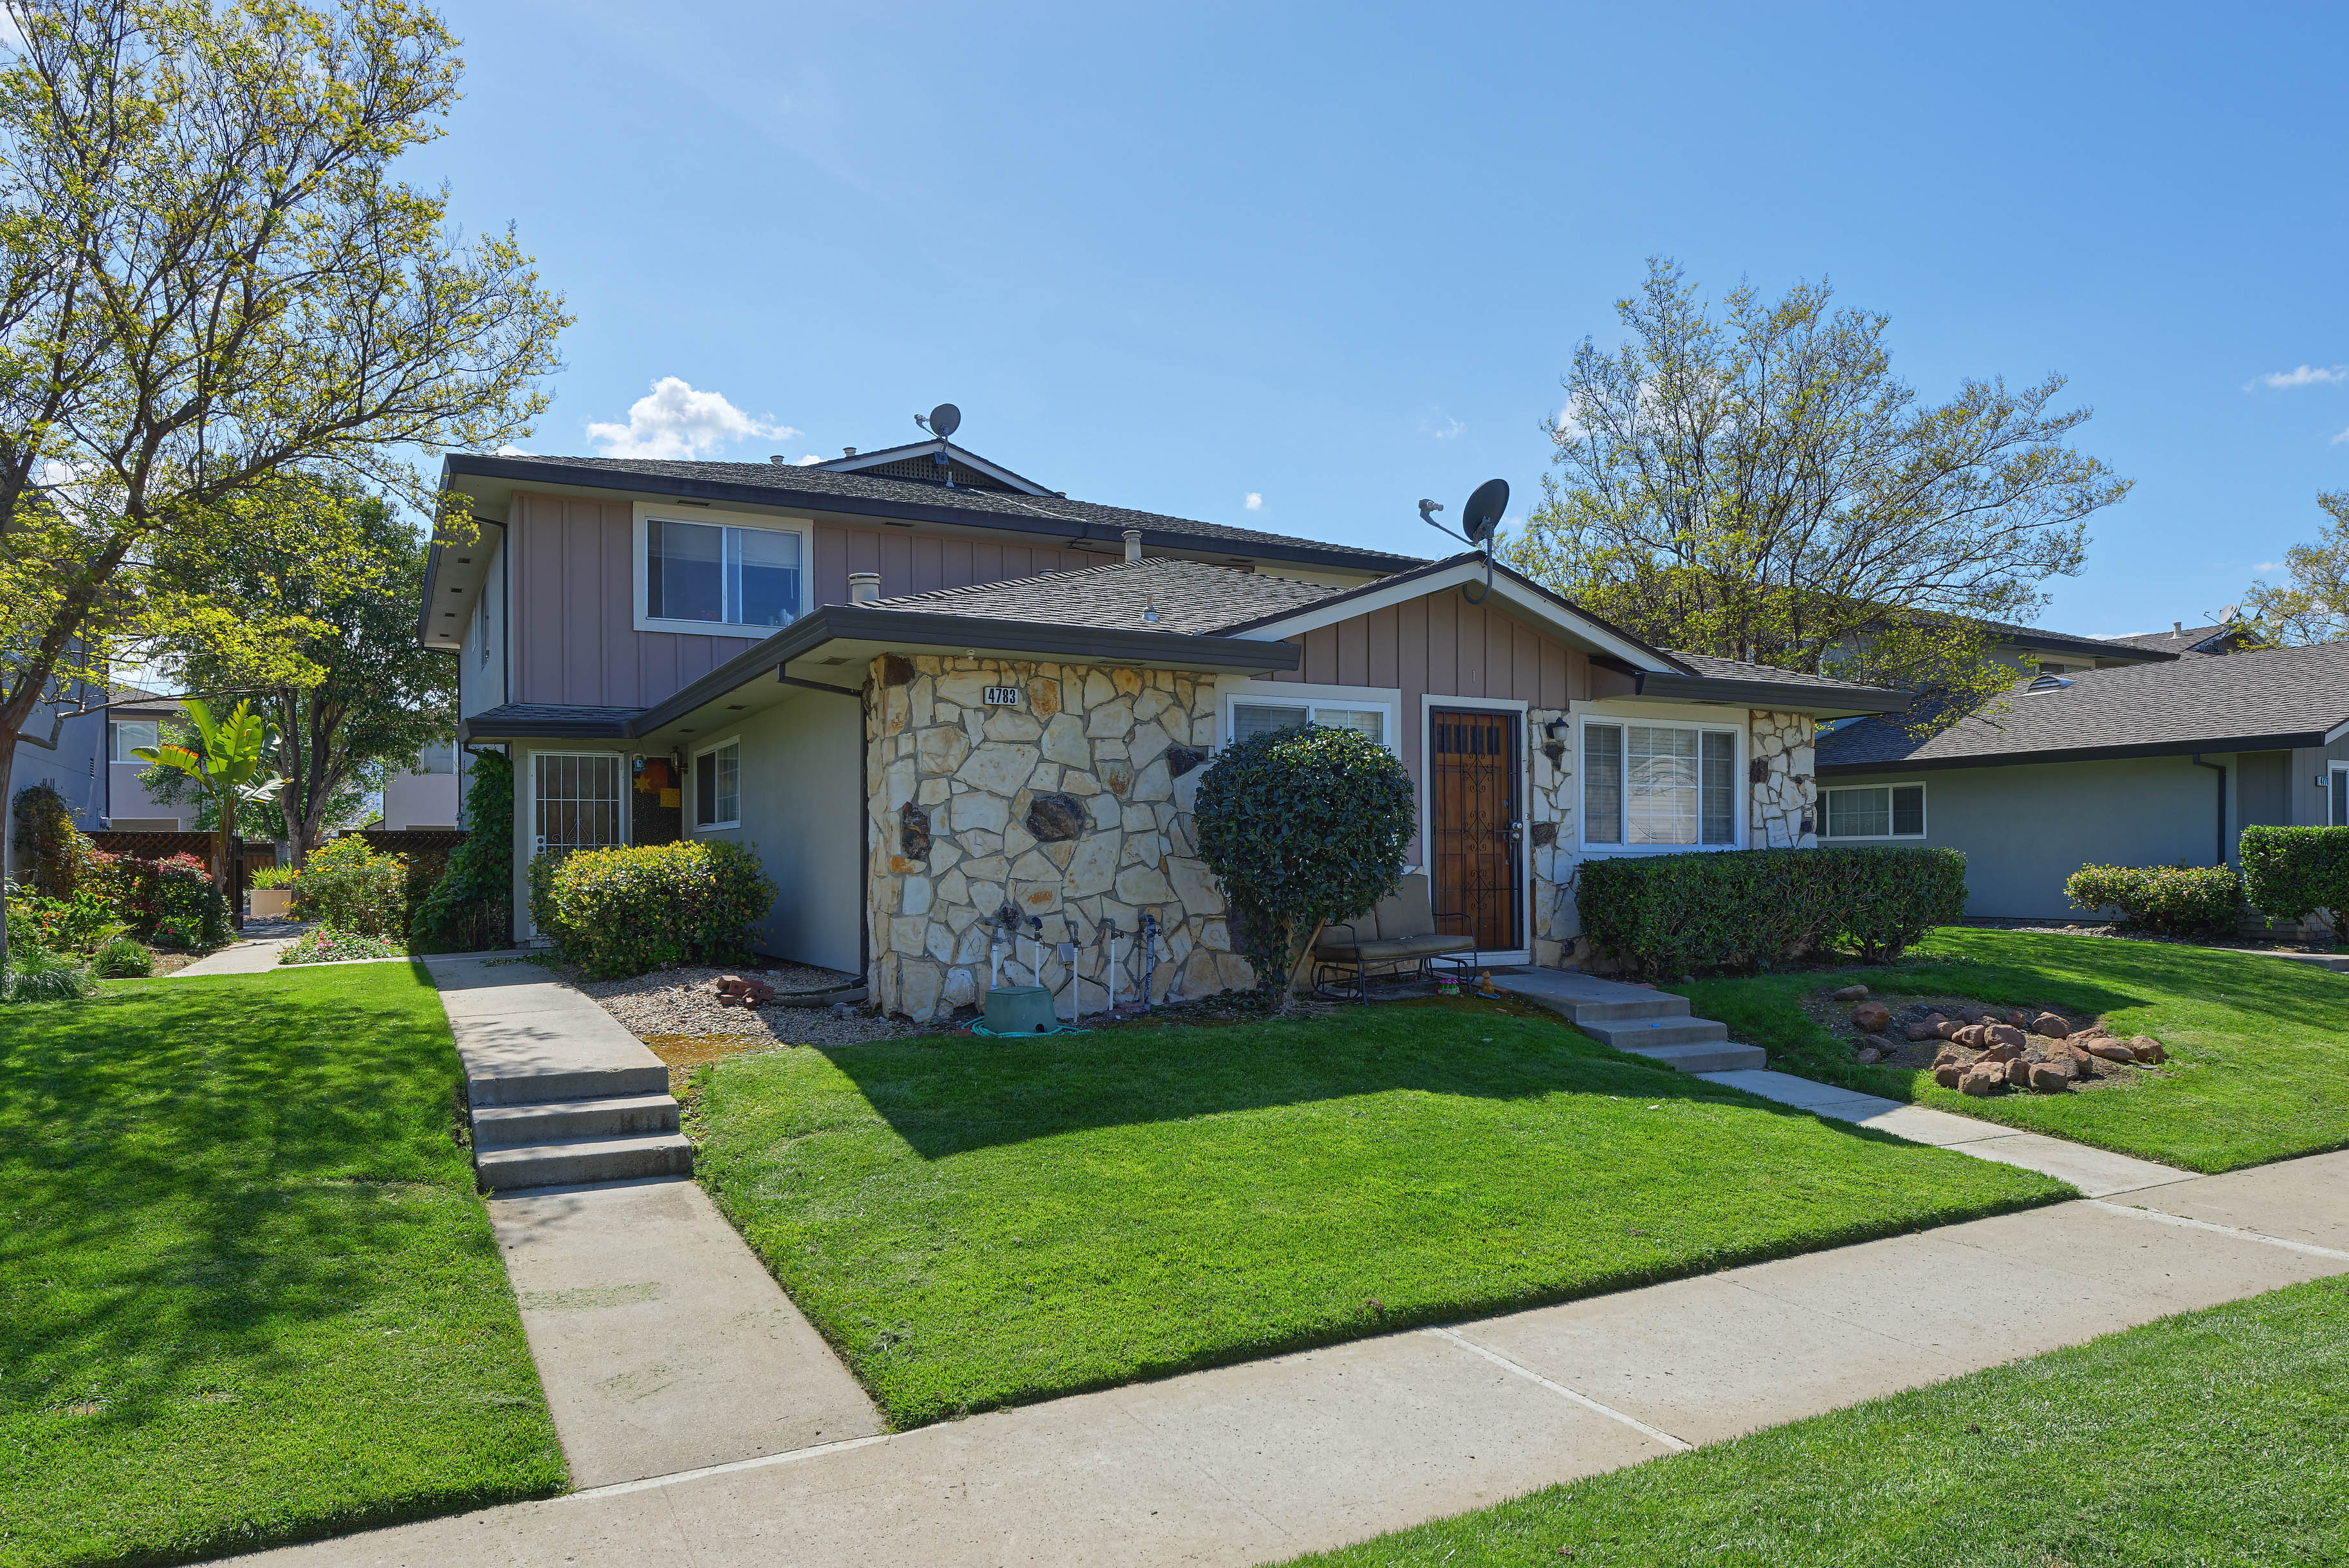 Price Drop in Excellent South San Jose Neighborhood!